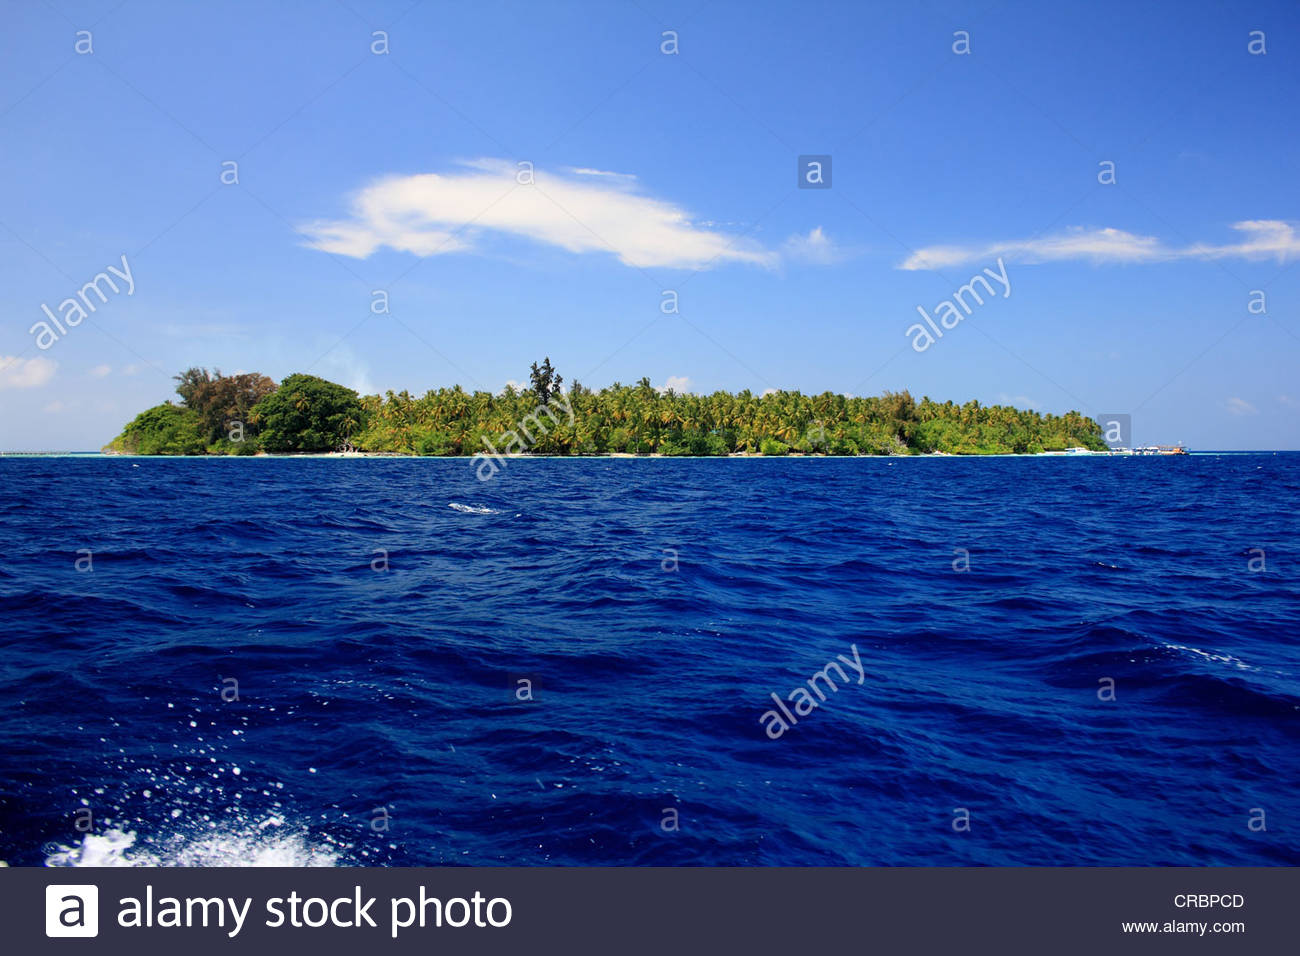 Palm trees on tropical island - Stock Image